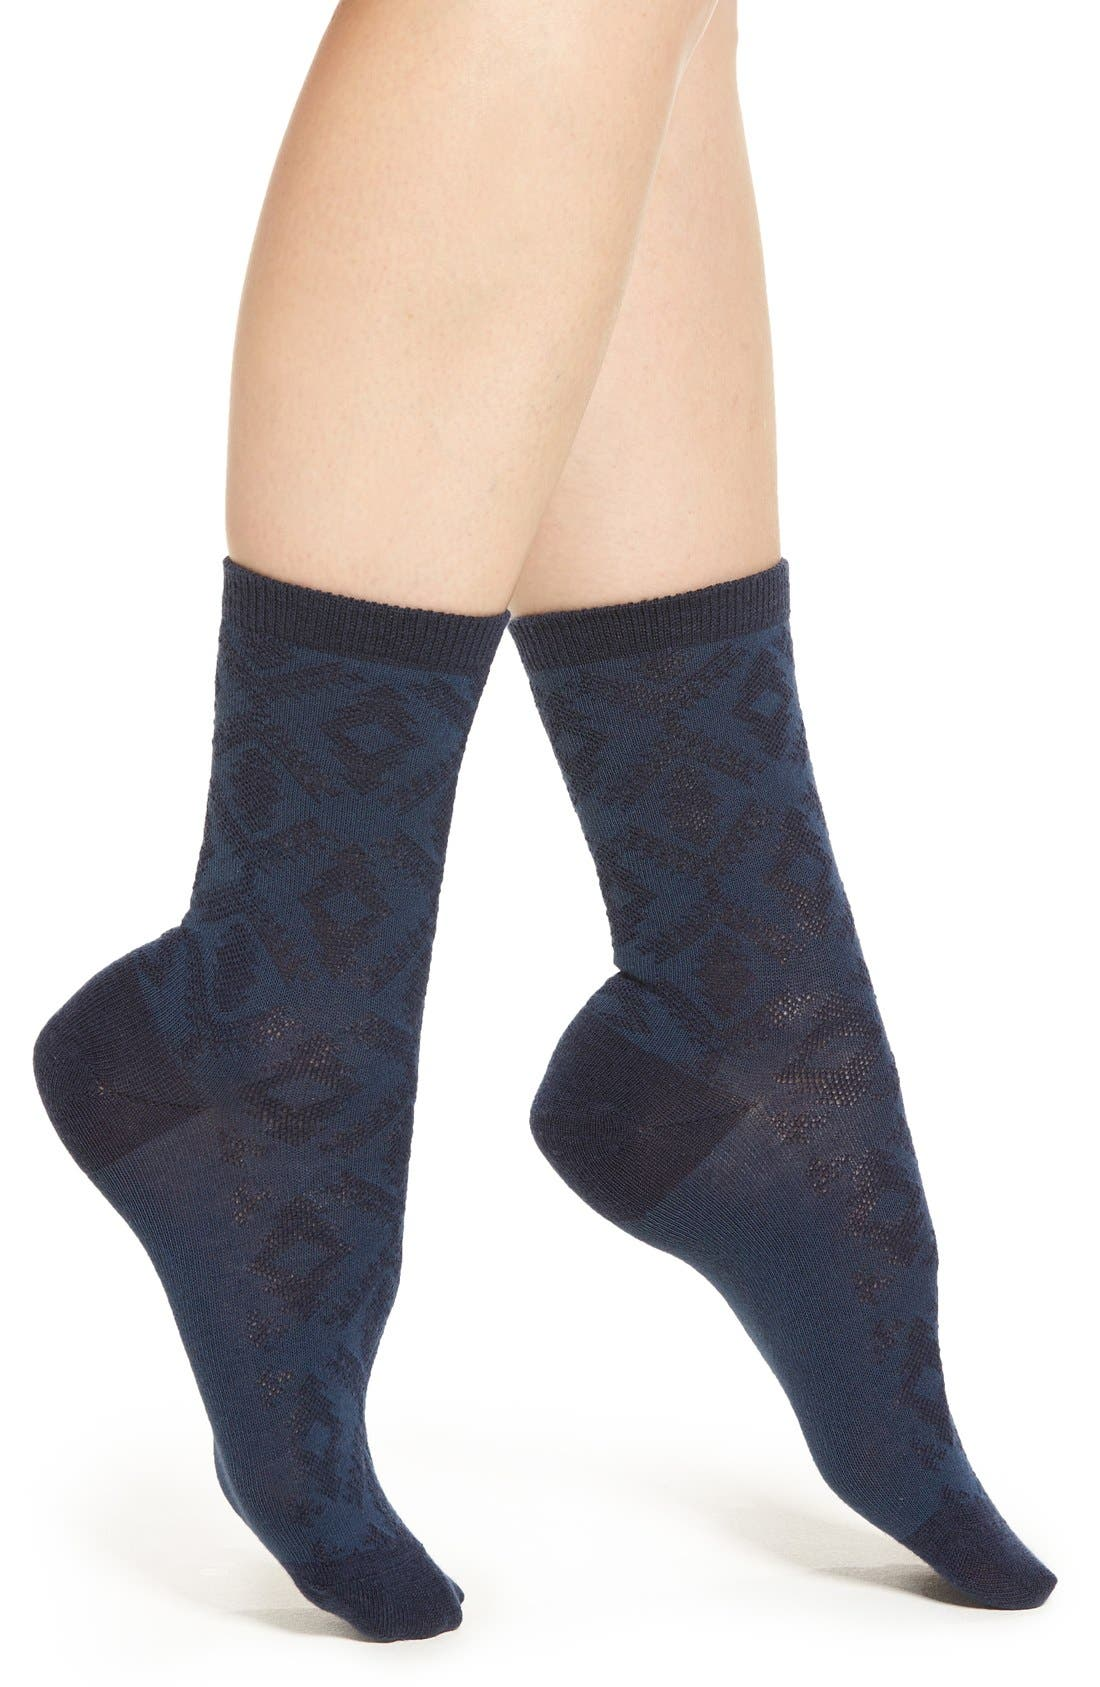 'Diamond River' Anklet Socks,                         Main,                         color, Navy